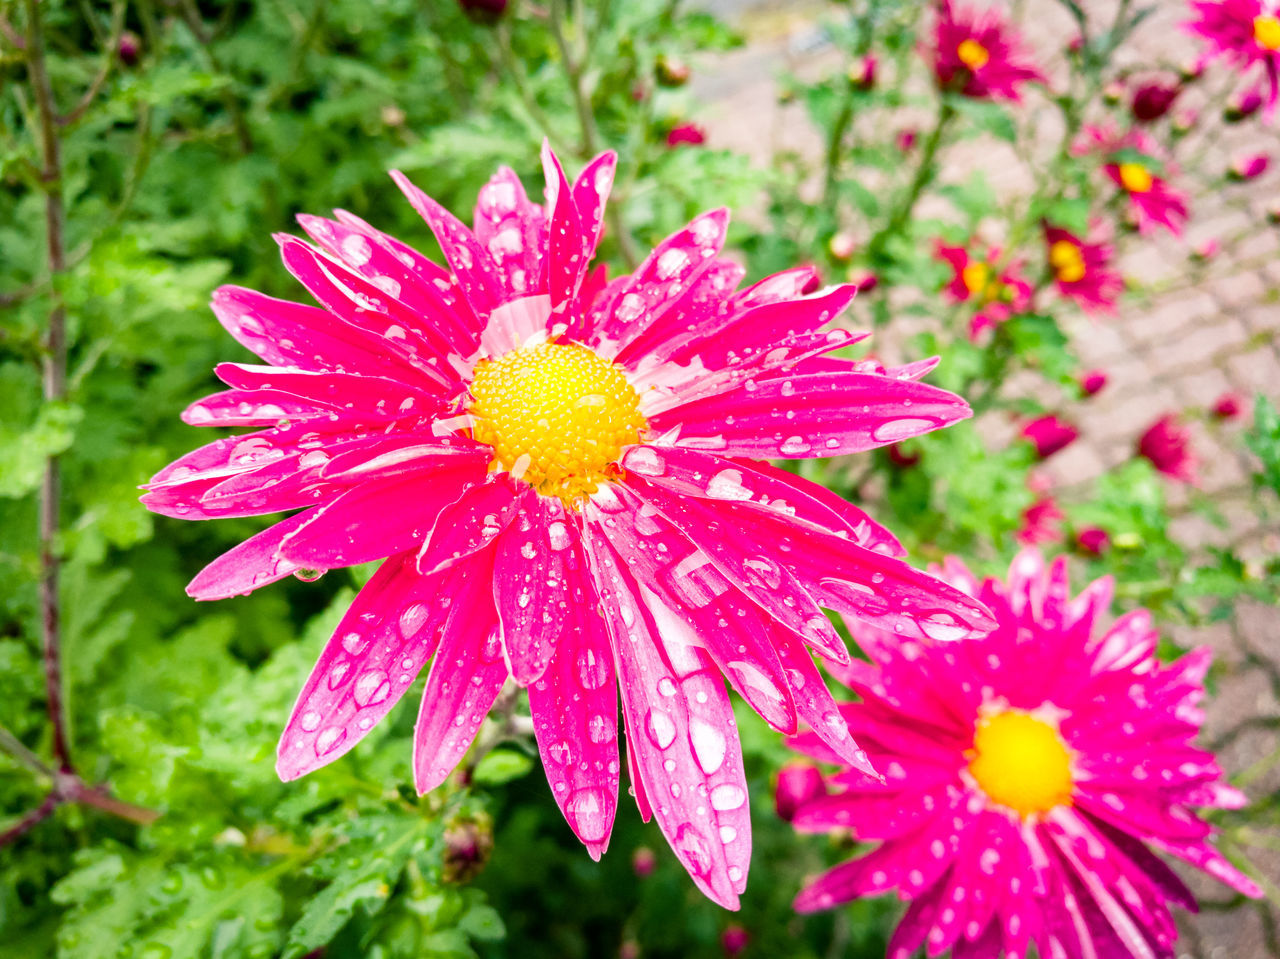 Flower Nature Beauty In Nature Petal Flower Head Growth Freshness Pink Color Fragility Close-up Red Outdoors Plant No People Pollen Day Horizontal Red Color Focus On Foreground Beauty In Nature